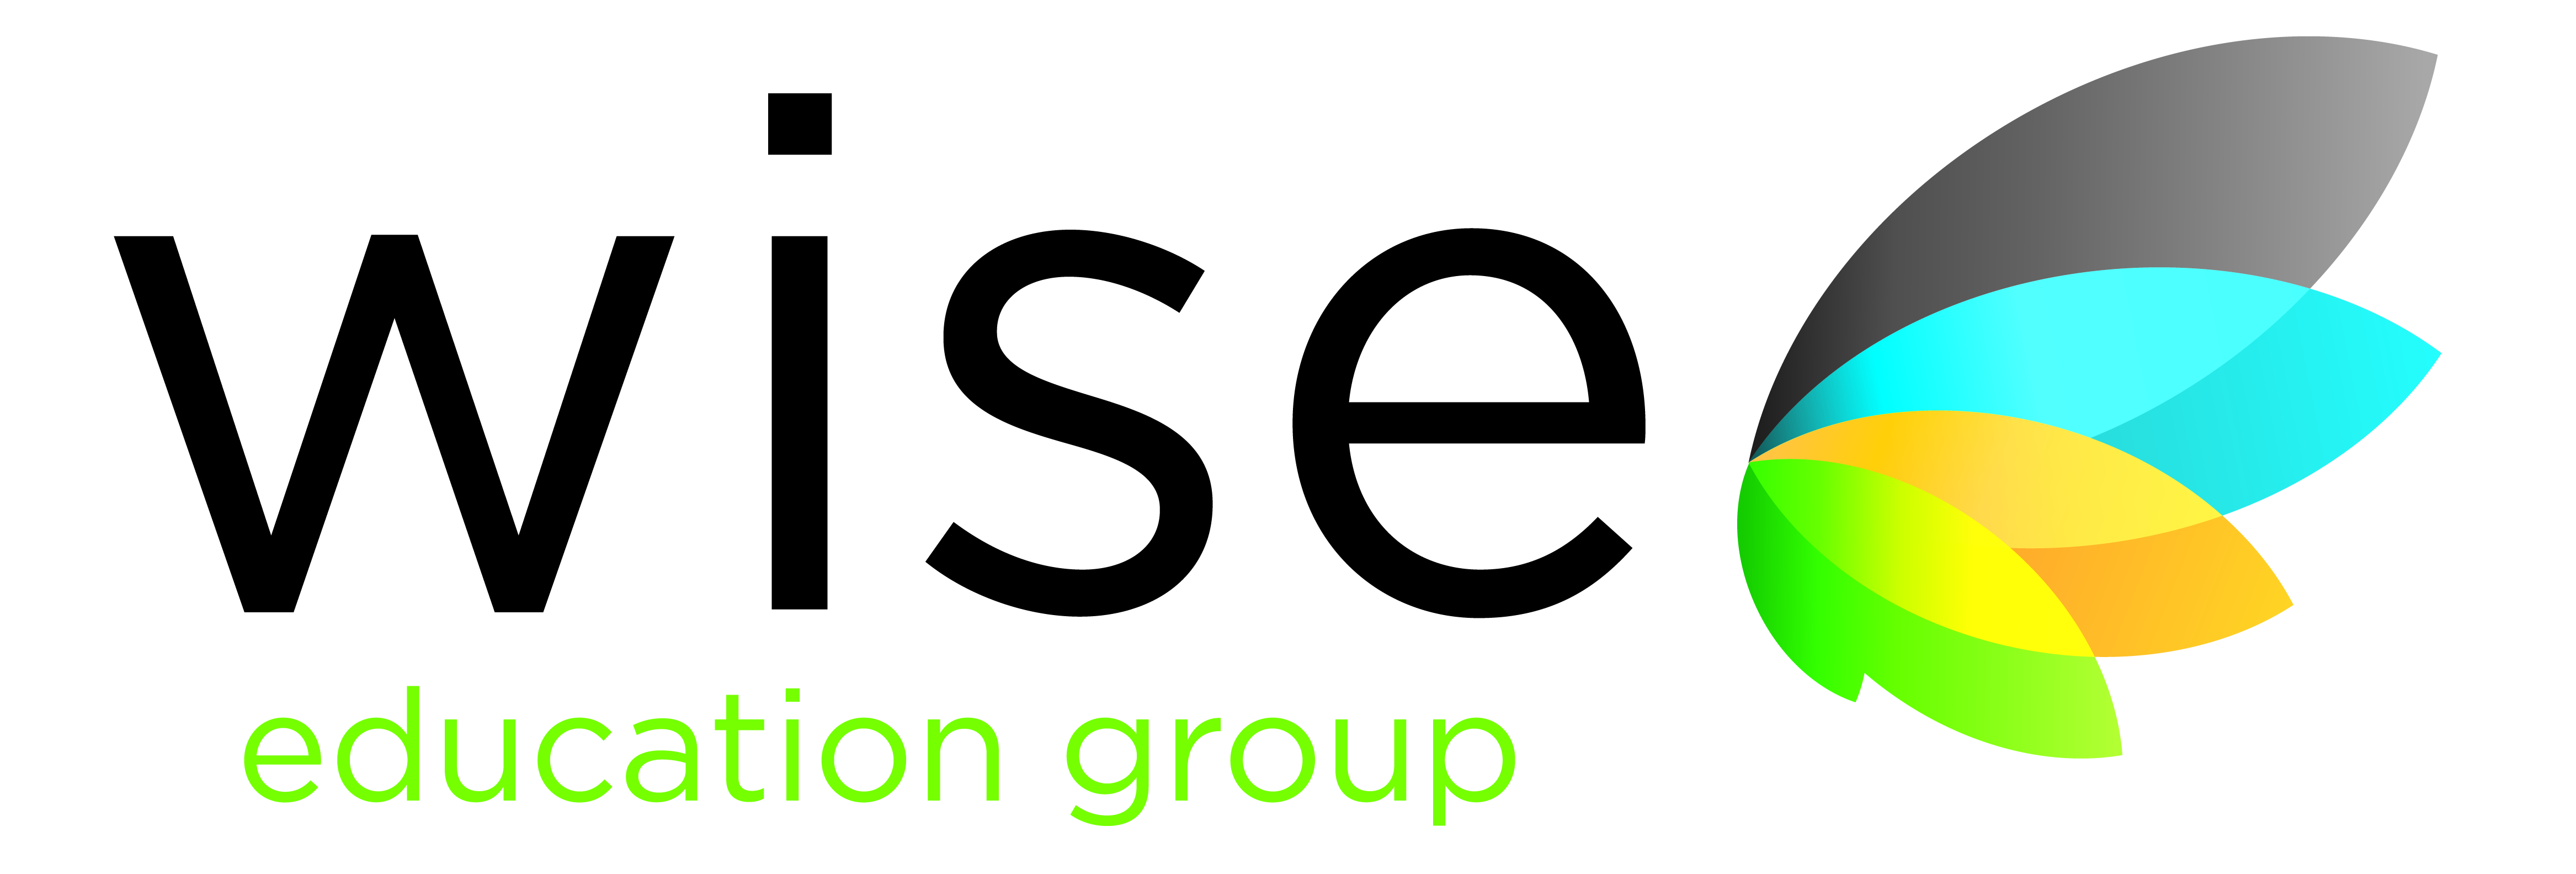 Wise Group Logo photo - 1